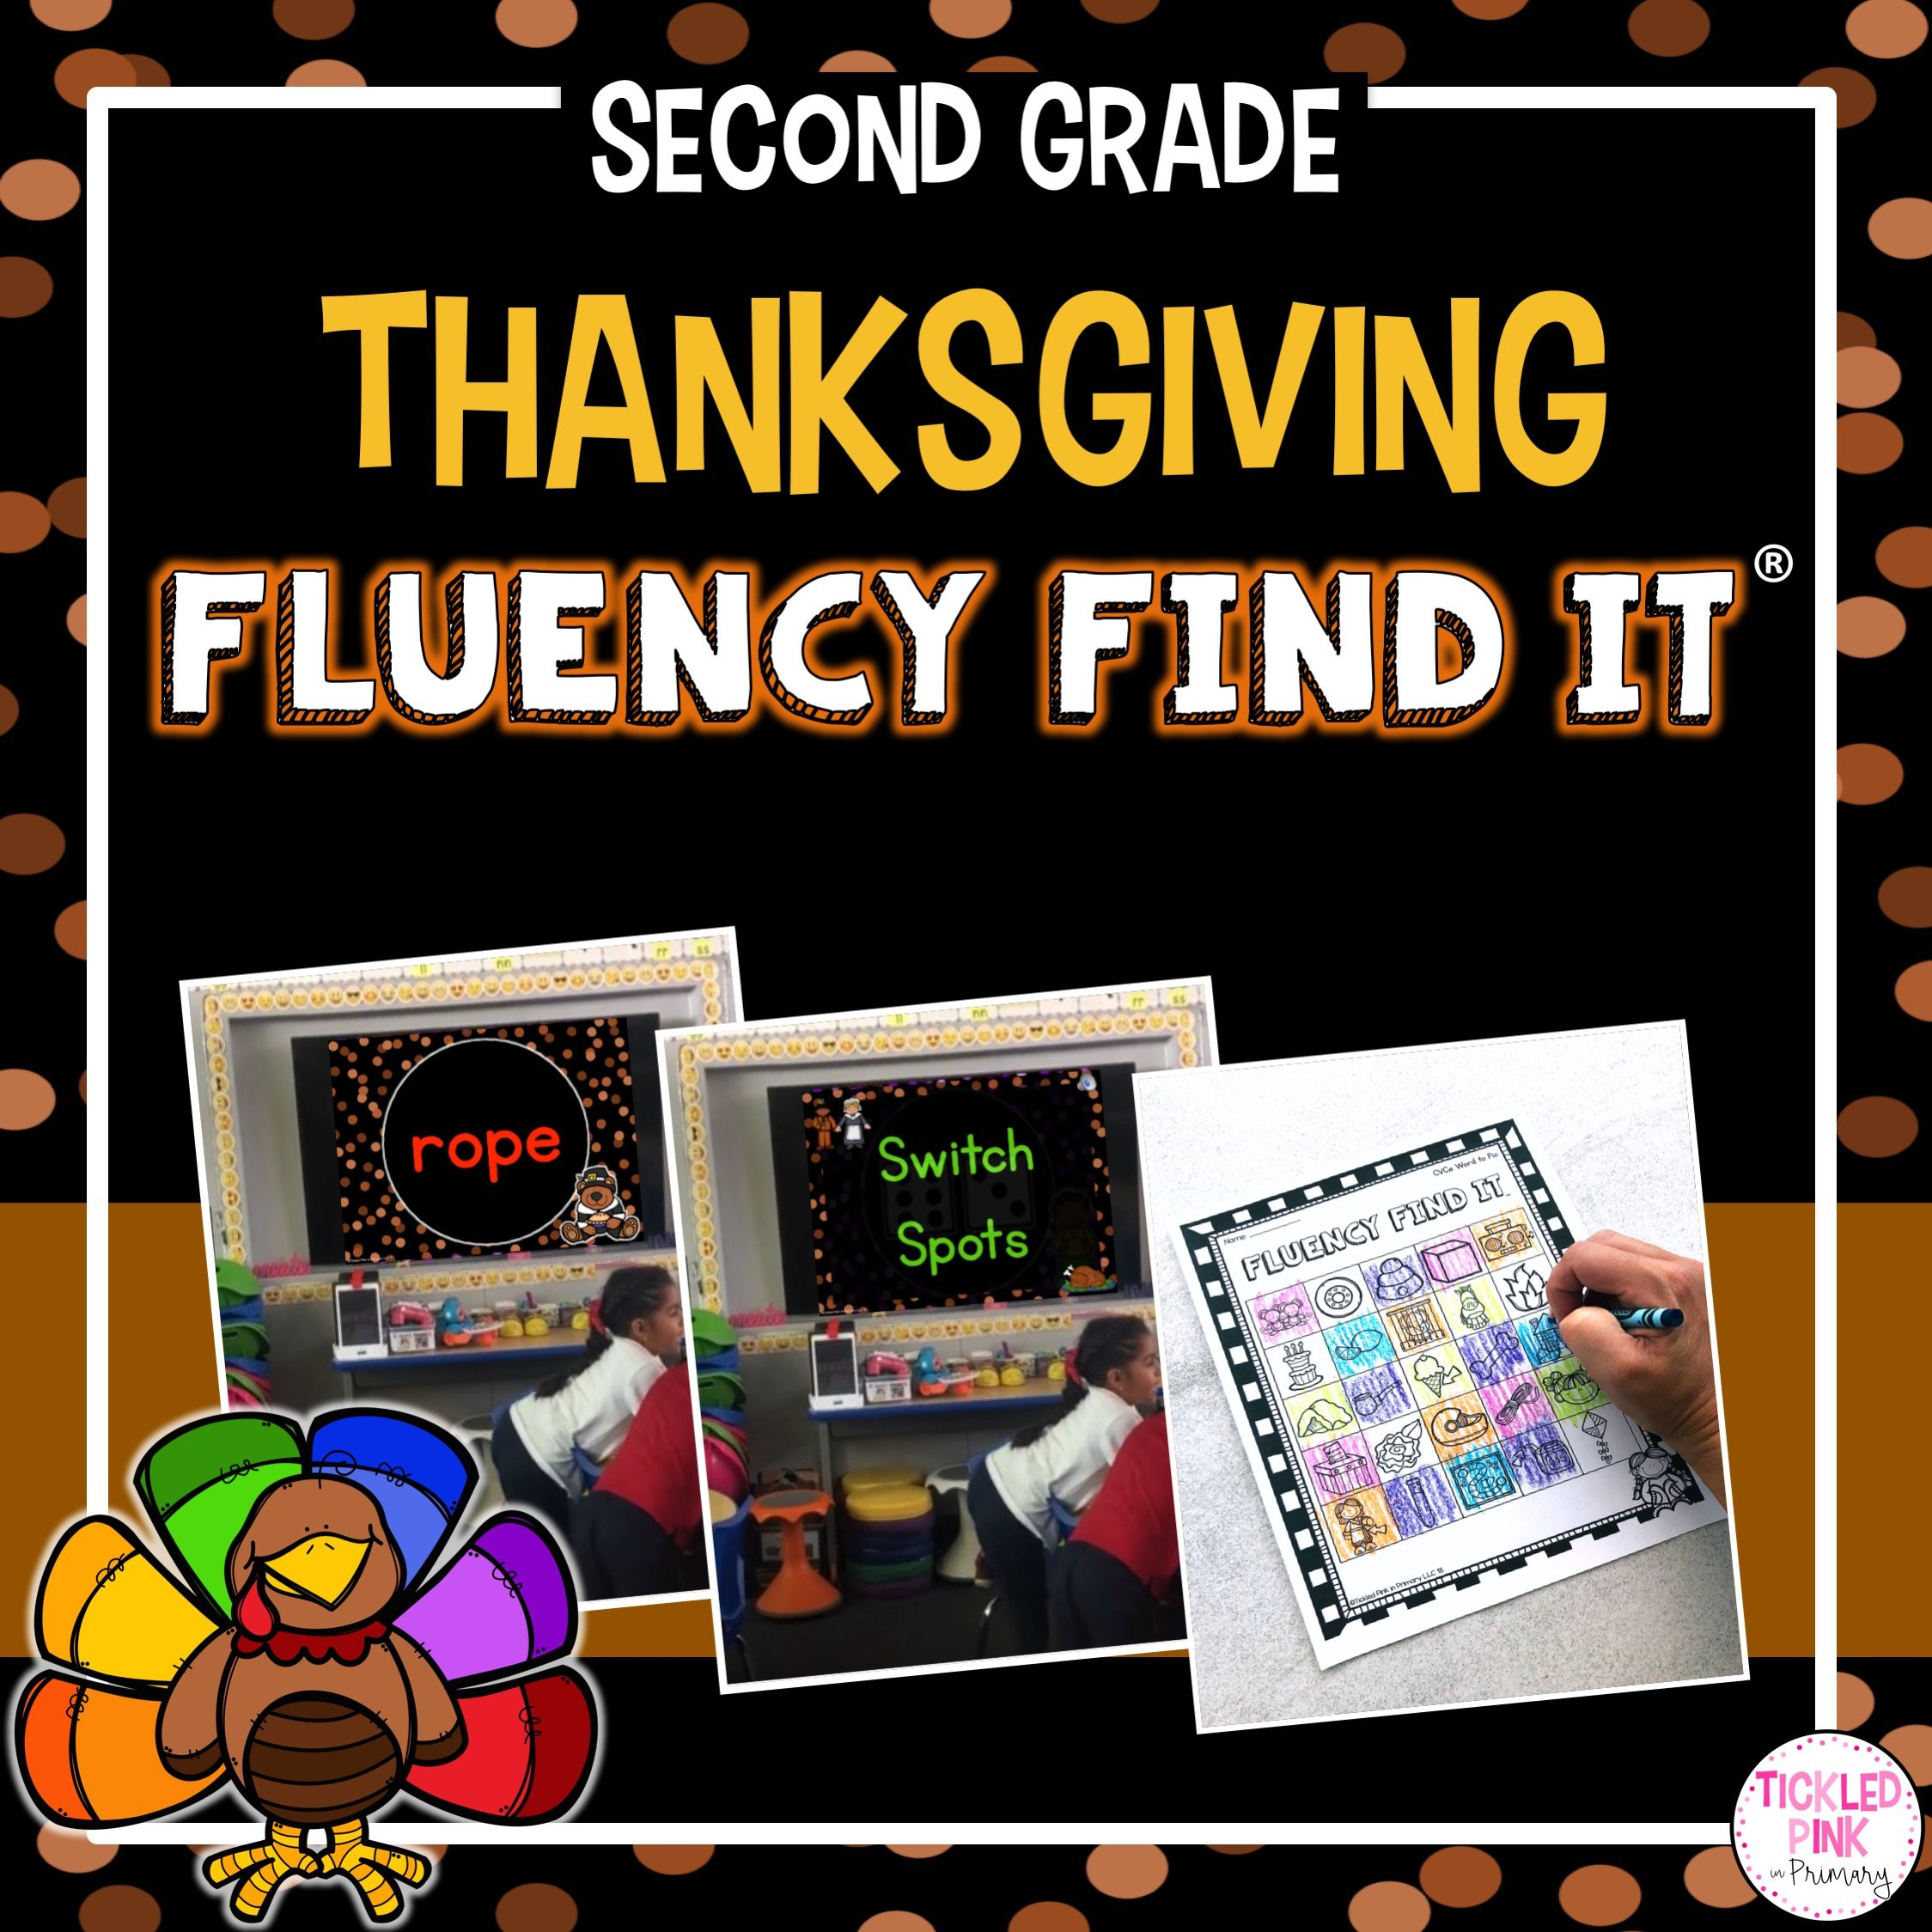 Thanksgiving Fluency Find It 2nd Grade Tickled Pink In